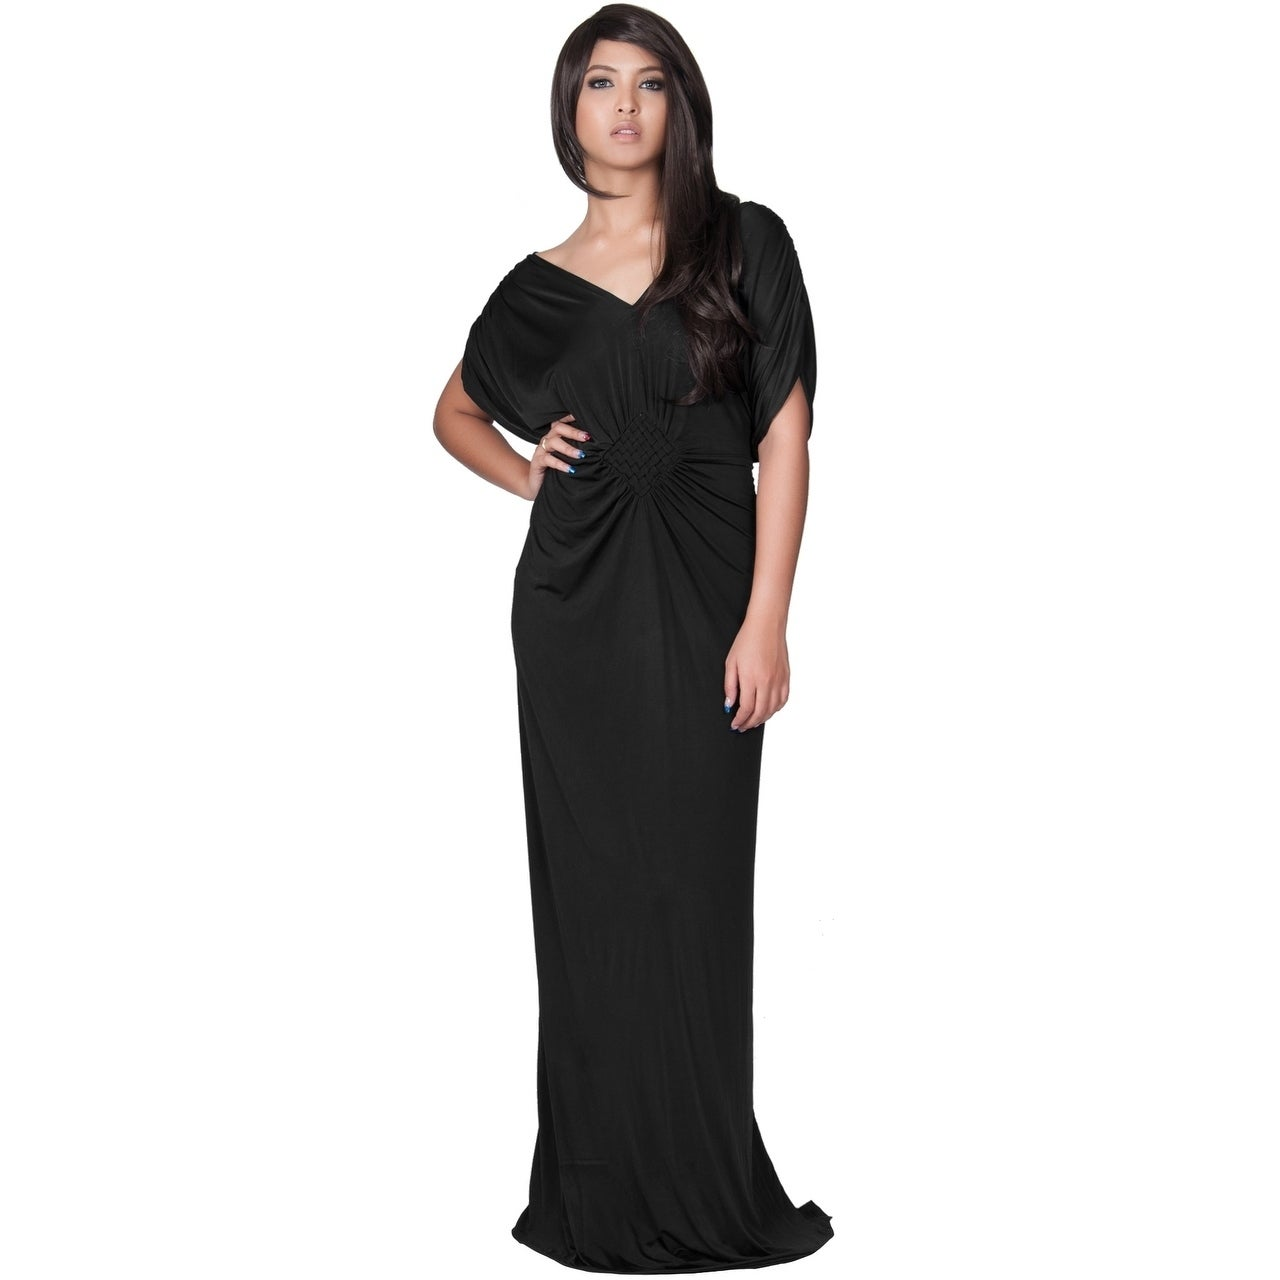 Koh Women S Grecian Inspired V Neck Evening Maxi Dress Free Shipping Today 10907776